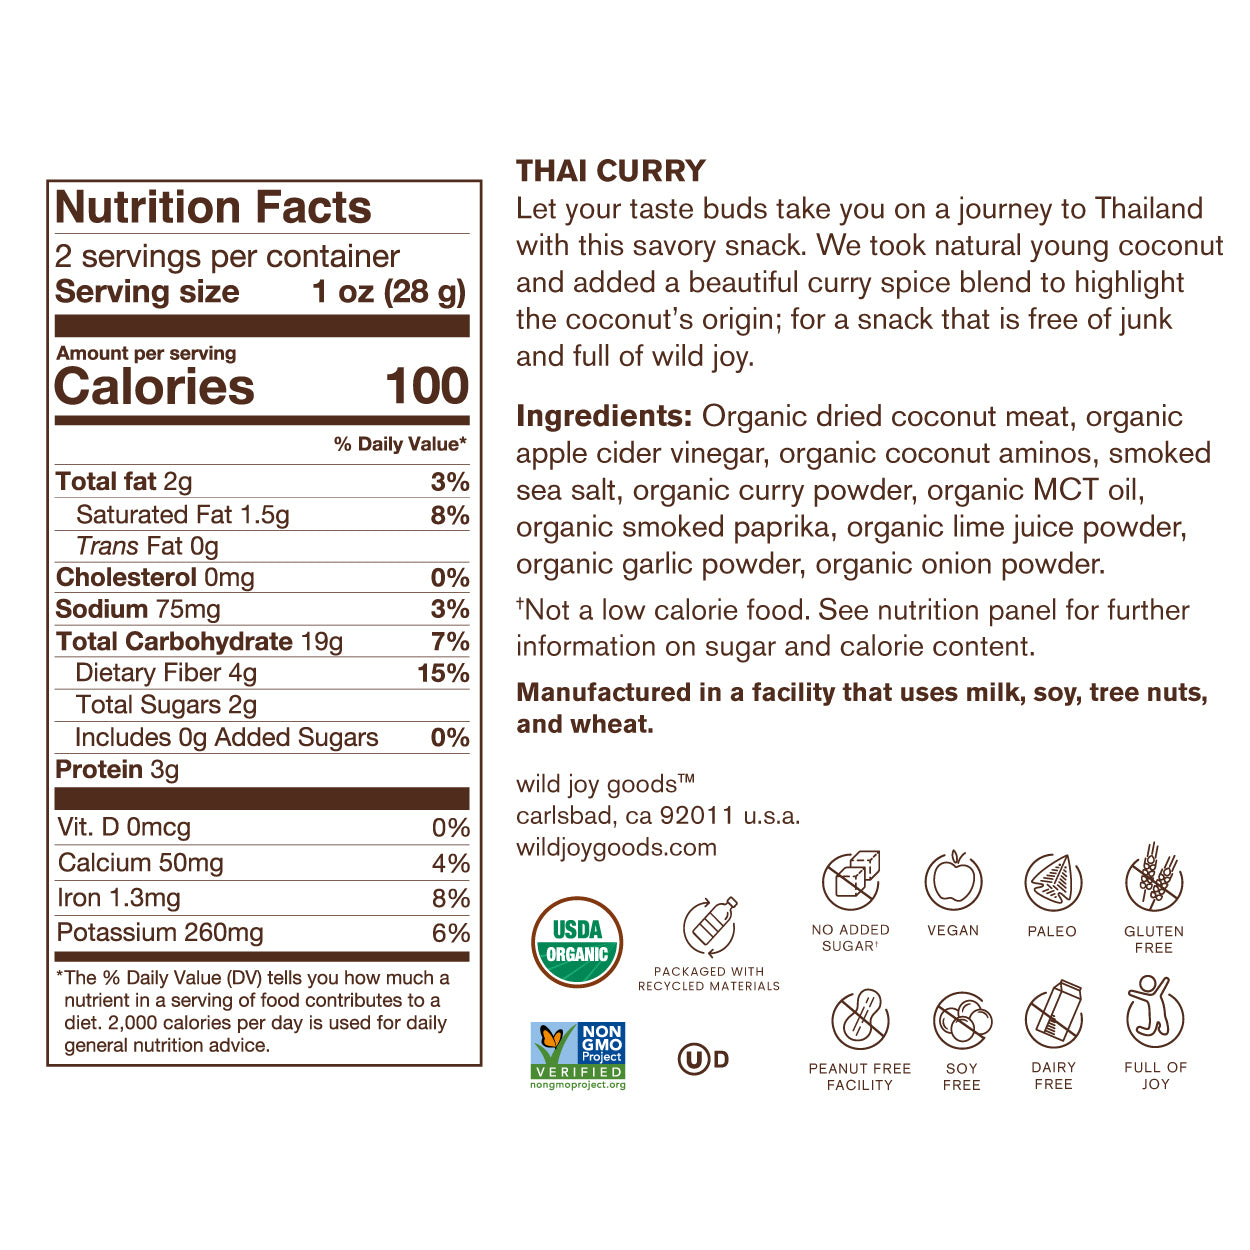 Coconut Jerky Thai Curry Nutrition Facts